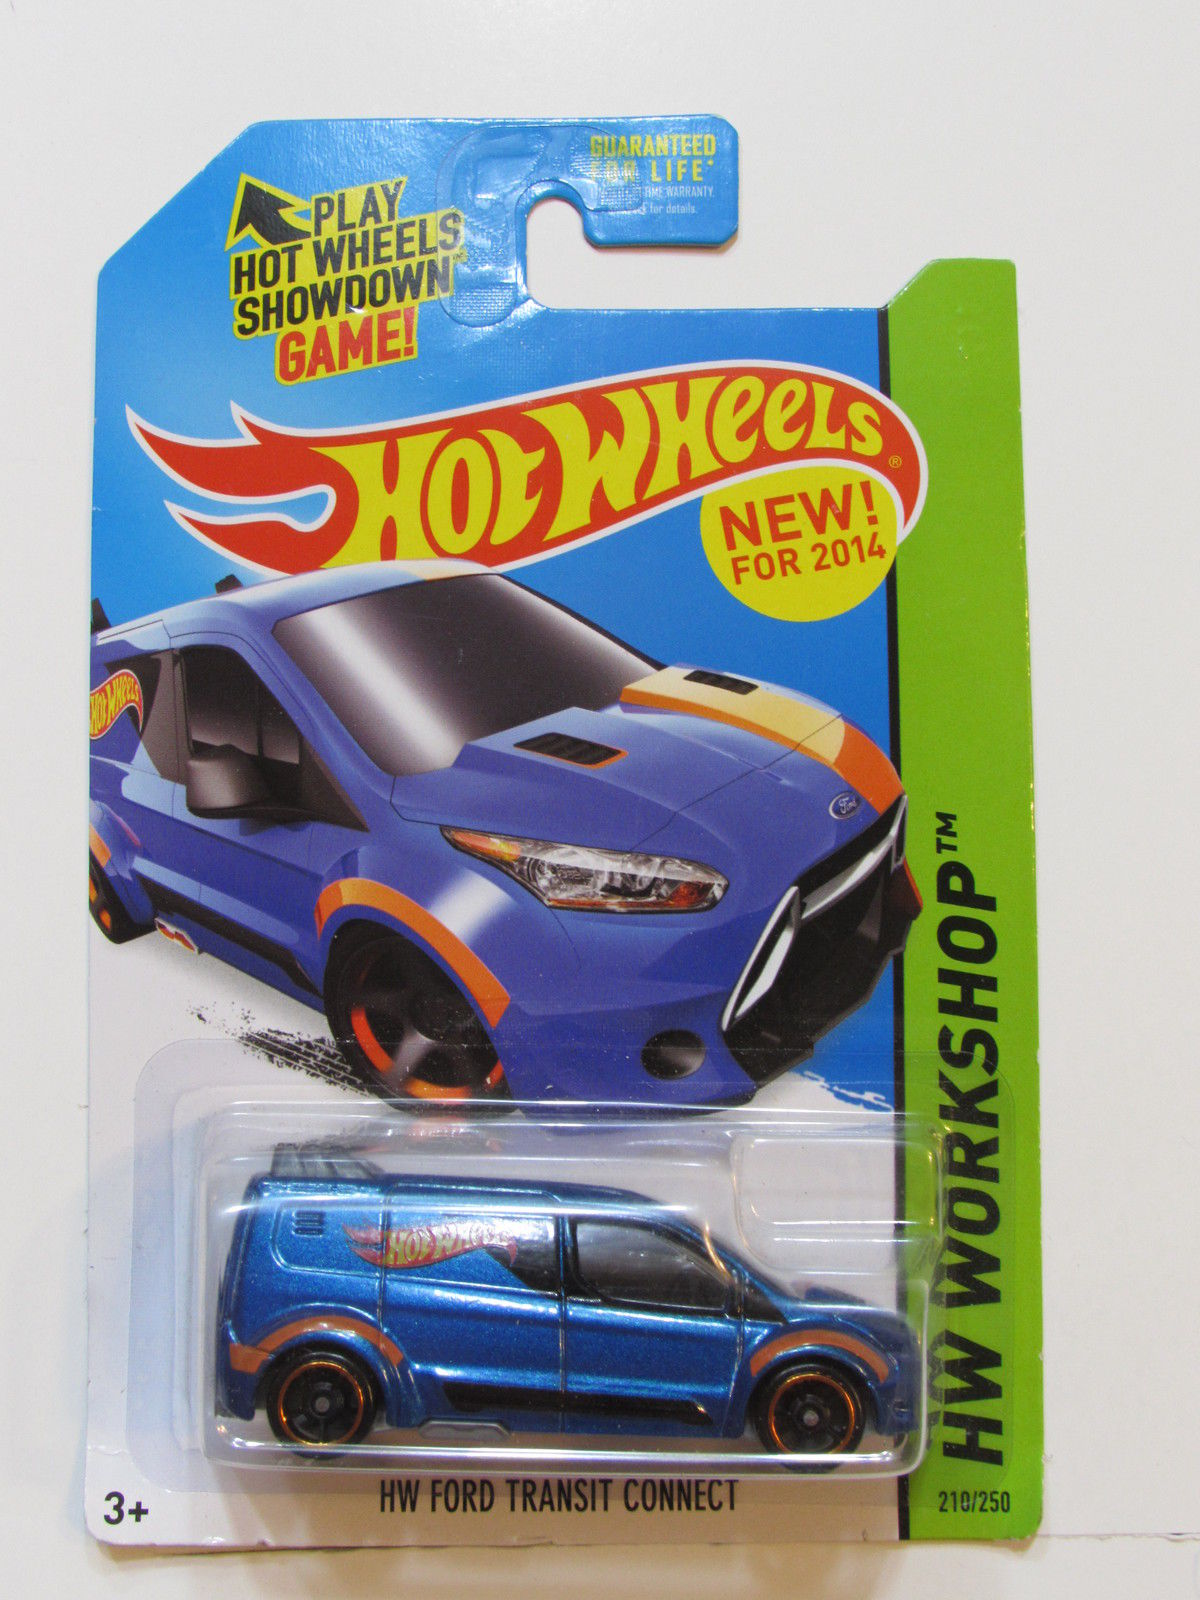 HOT WHEELS 2014 HW WORKSHOP - HW GARAGE HW FORD TRANSIT CONNECT